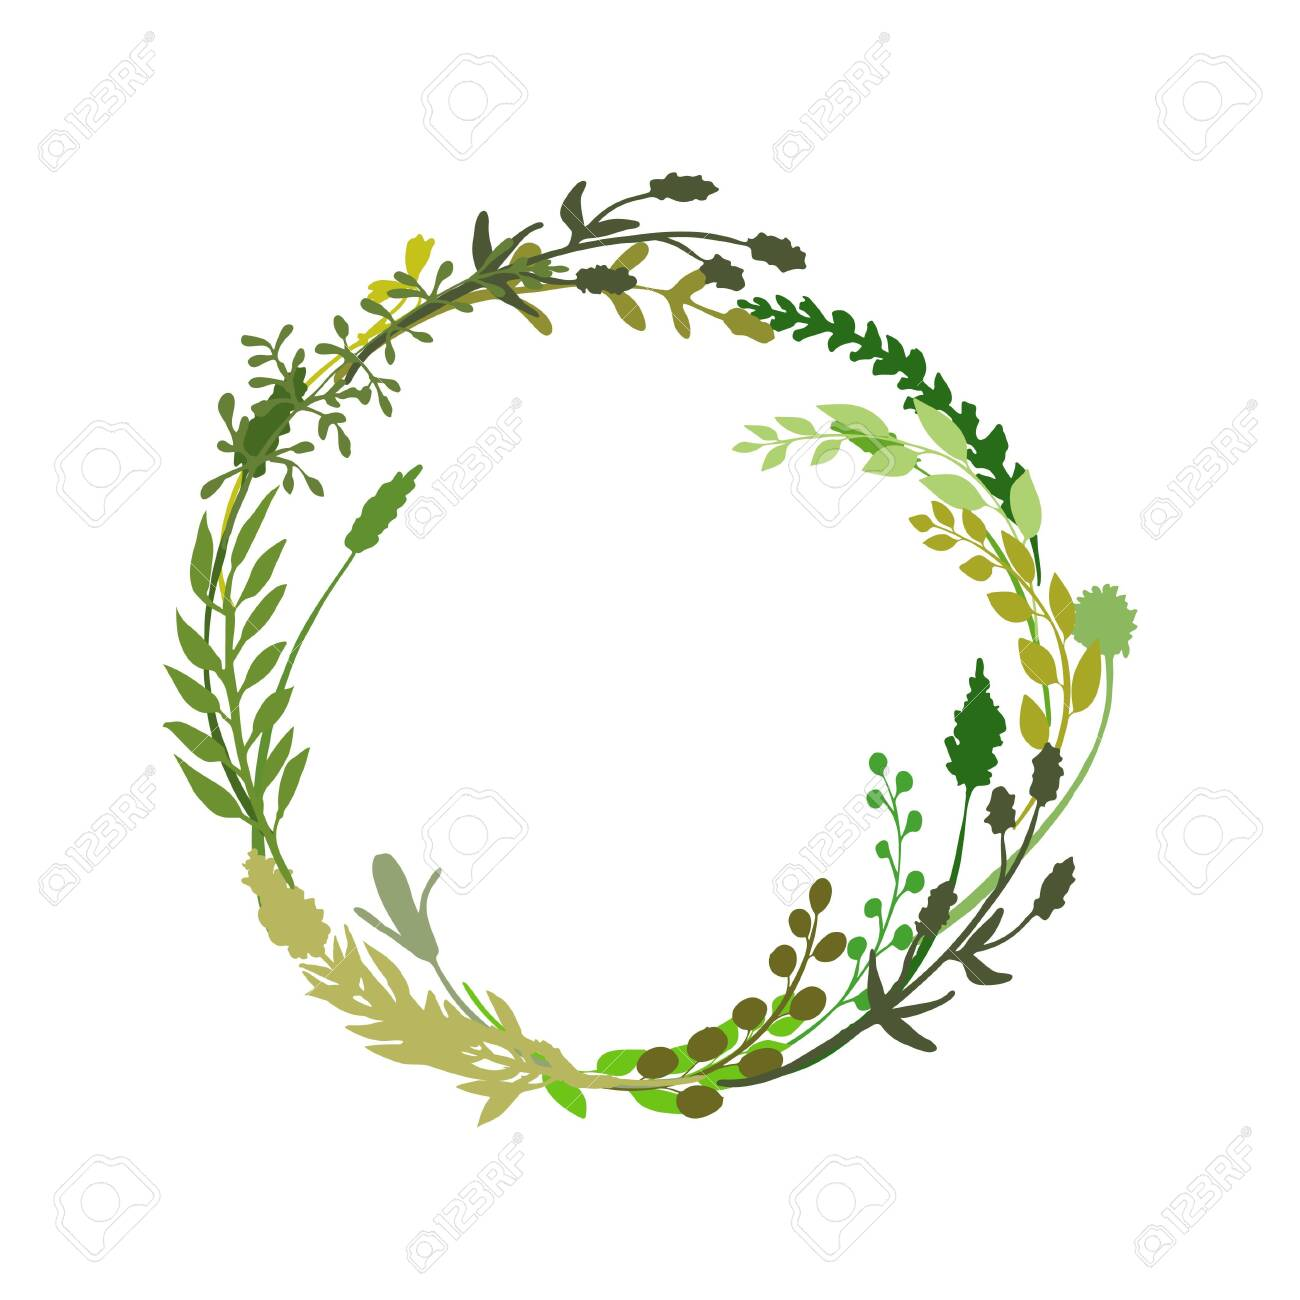 Floral wreath made of grass in circle. Hand drawn wild herbs and flowers. Botanical illustration. Great to place text, quote. Round frame or border. Vector - 140408624